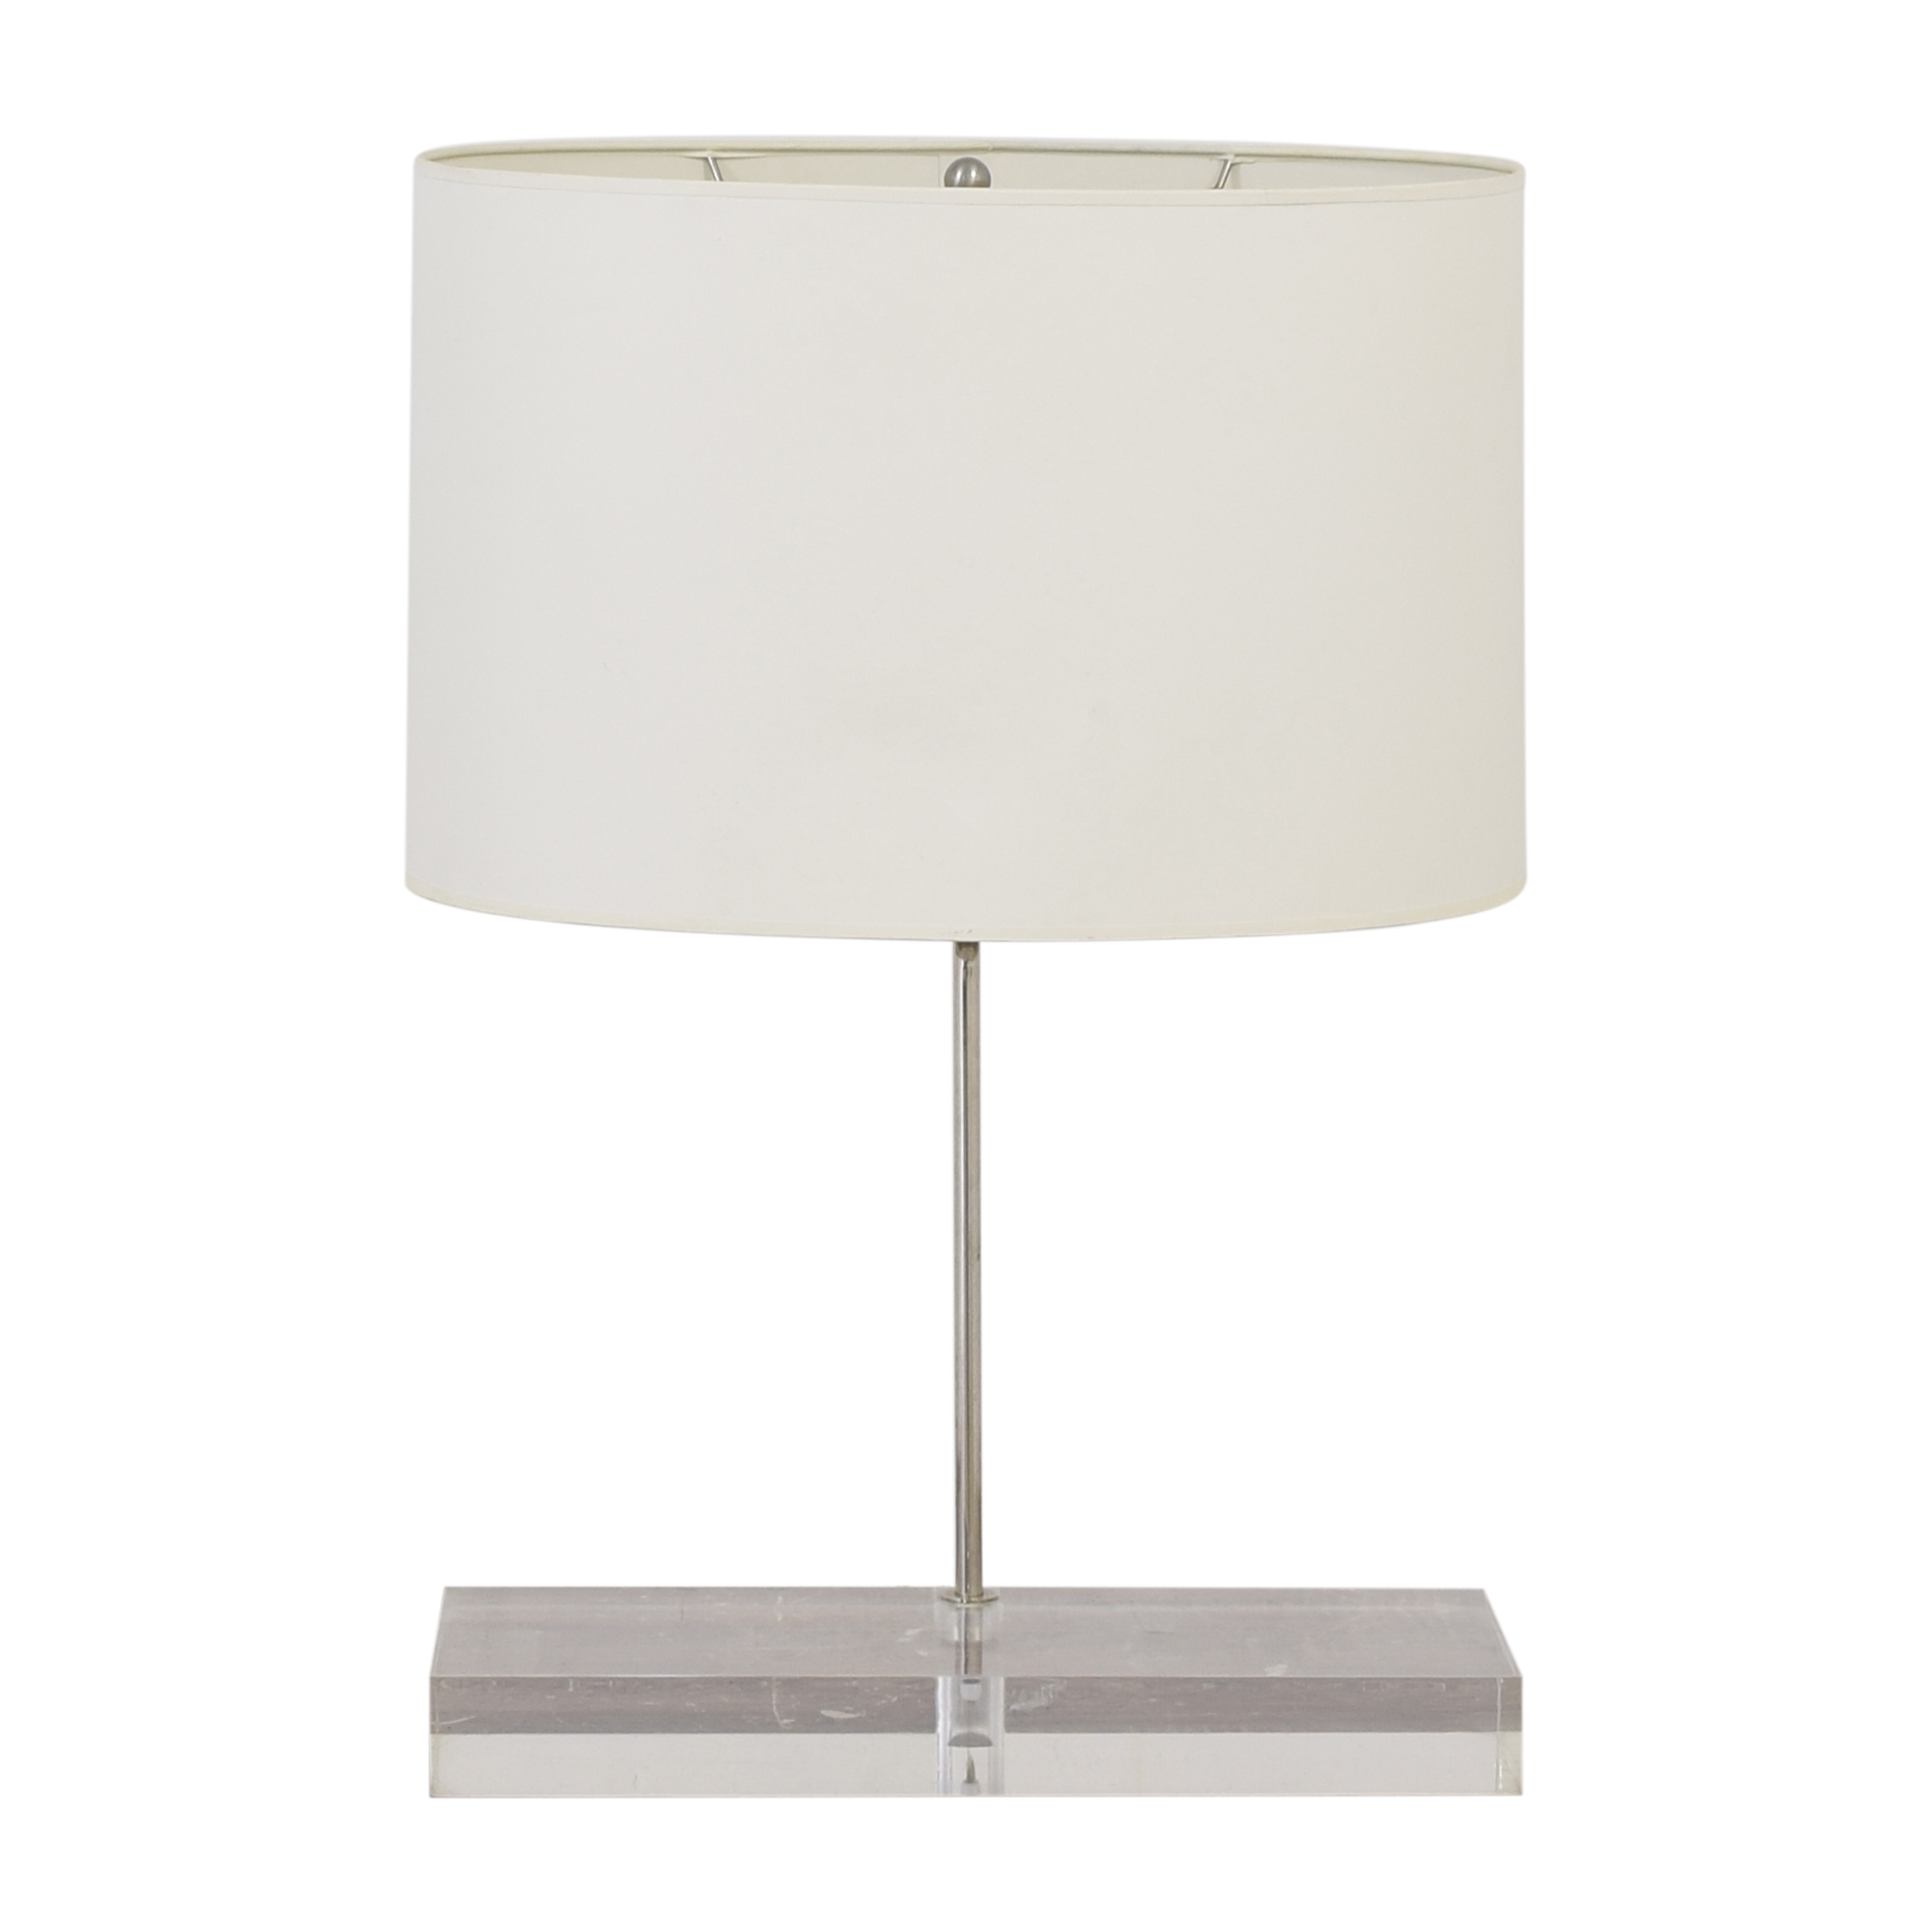 Jonathan Adler Modern Acrylic Table Lamp / Lamps